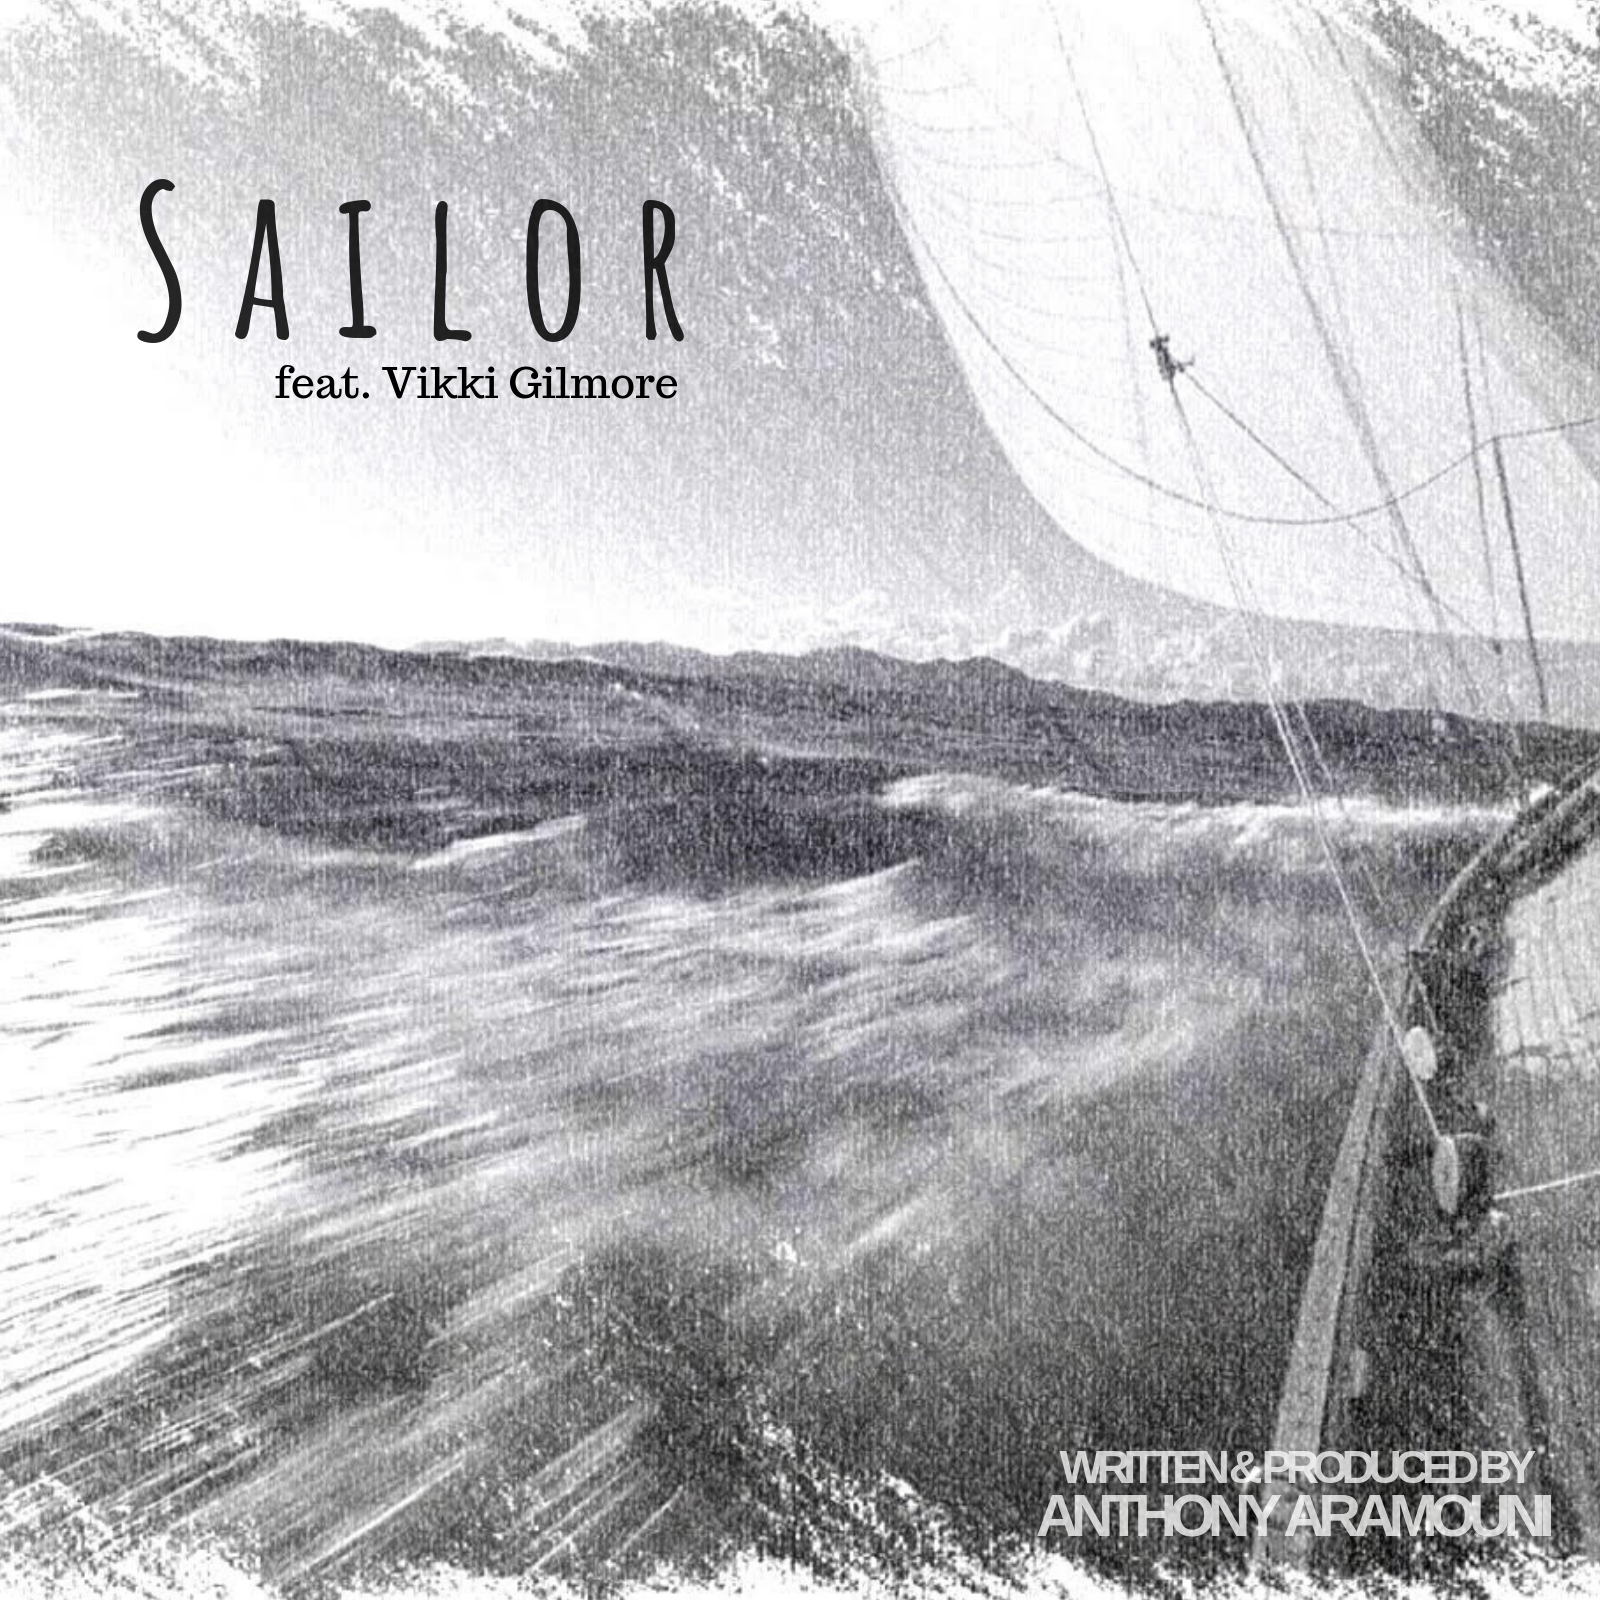 Sailor - Cover Art